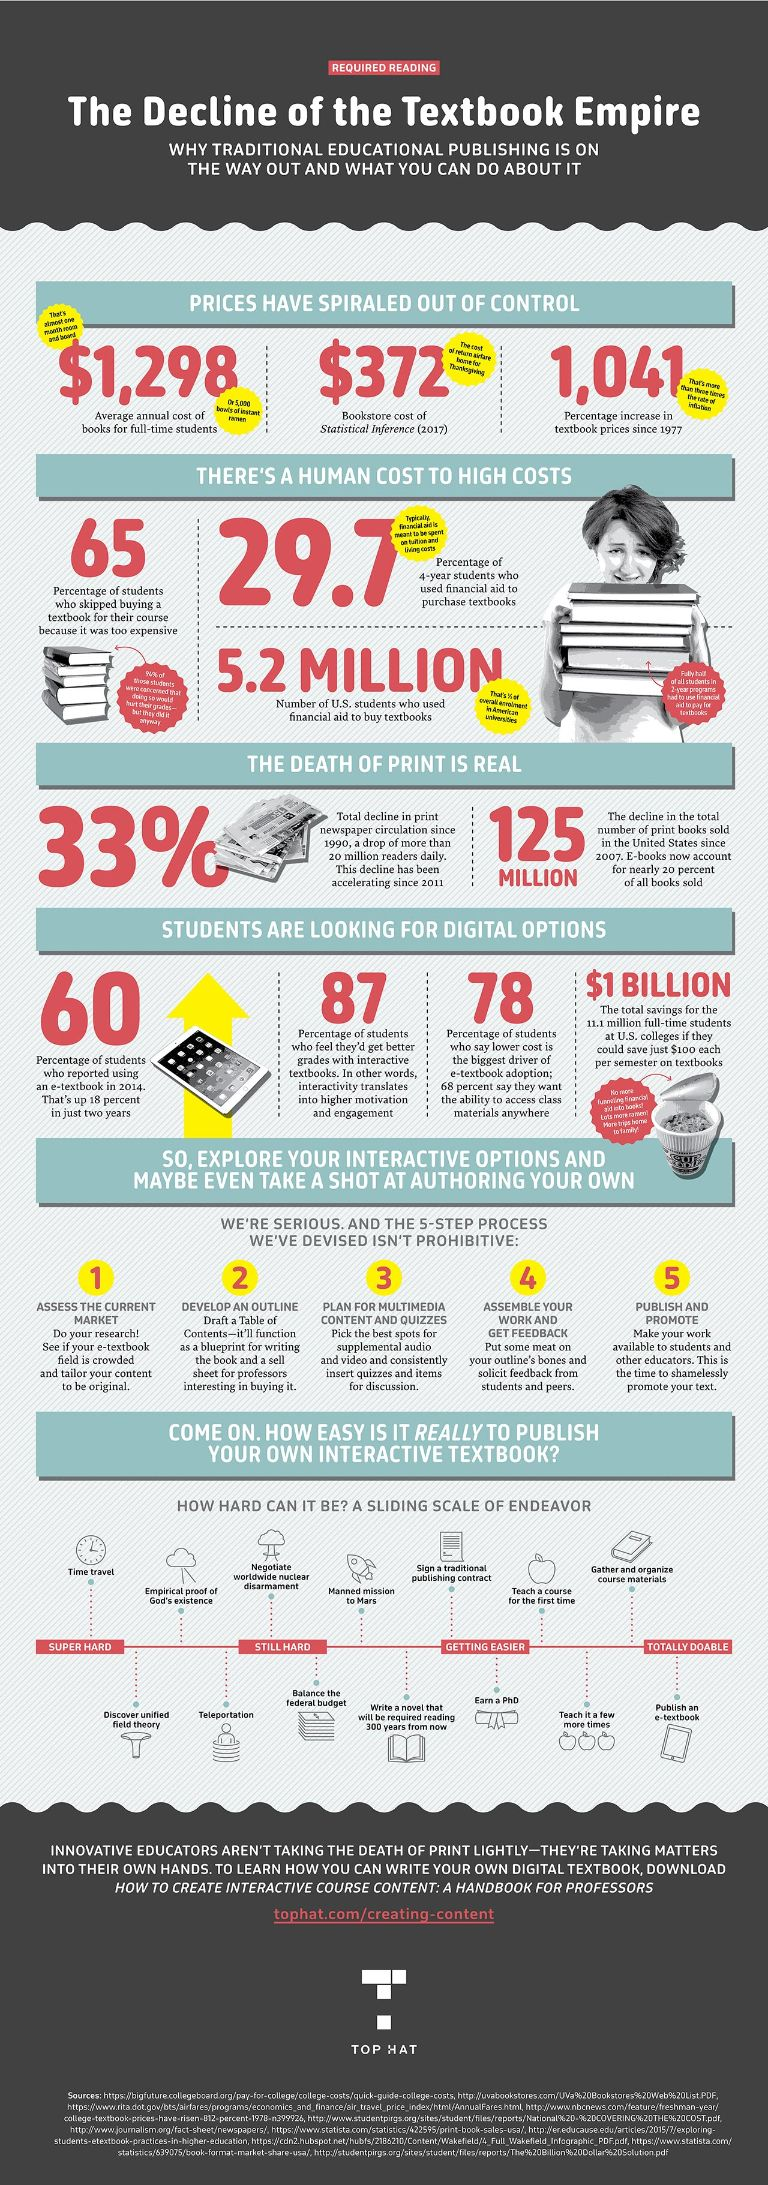 Infographic: Decline of the Textbook Empire